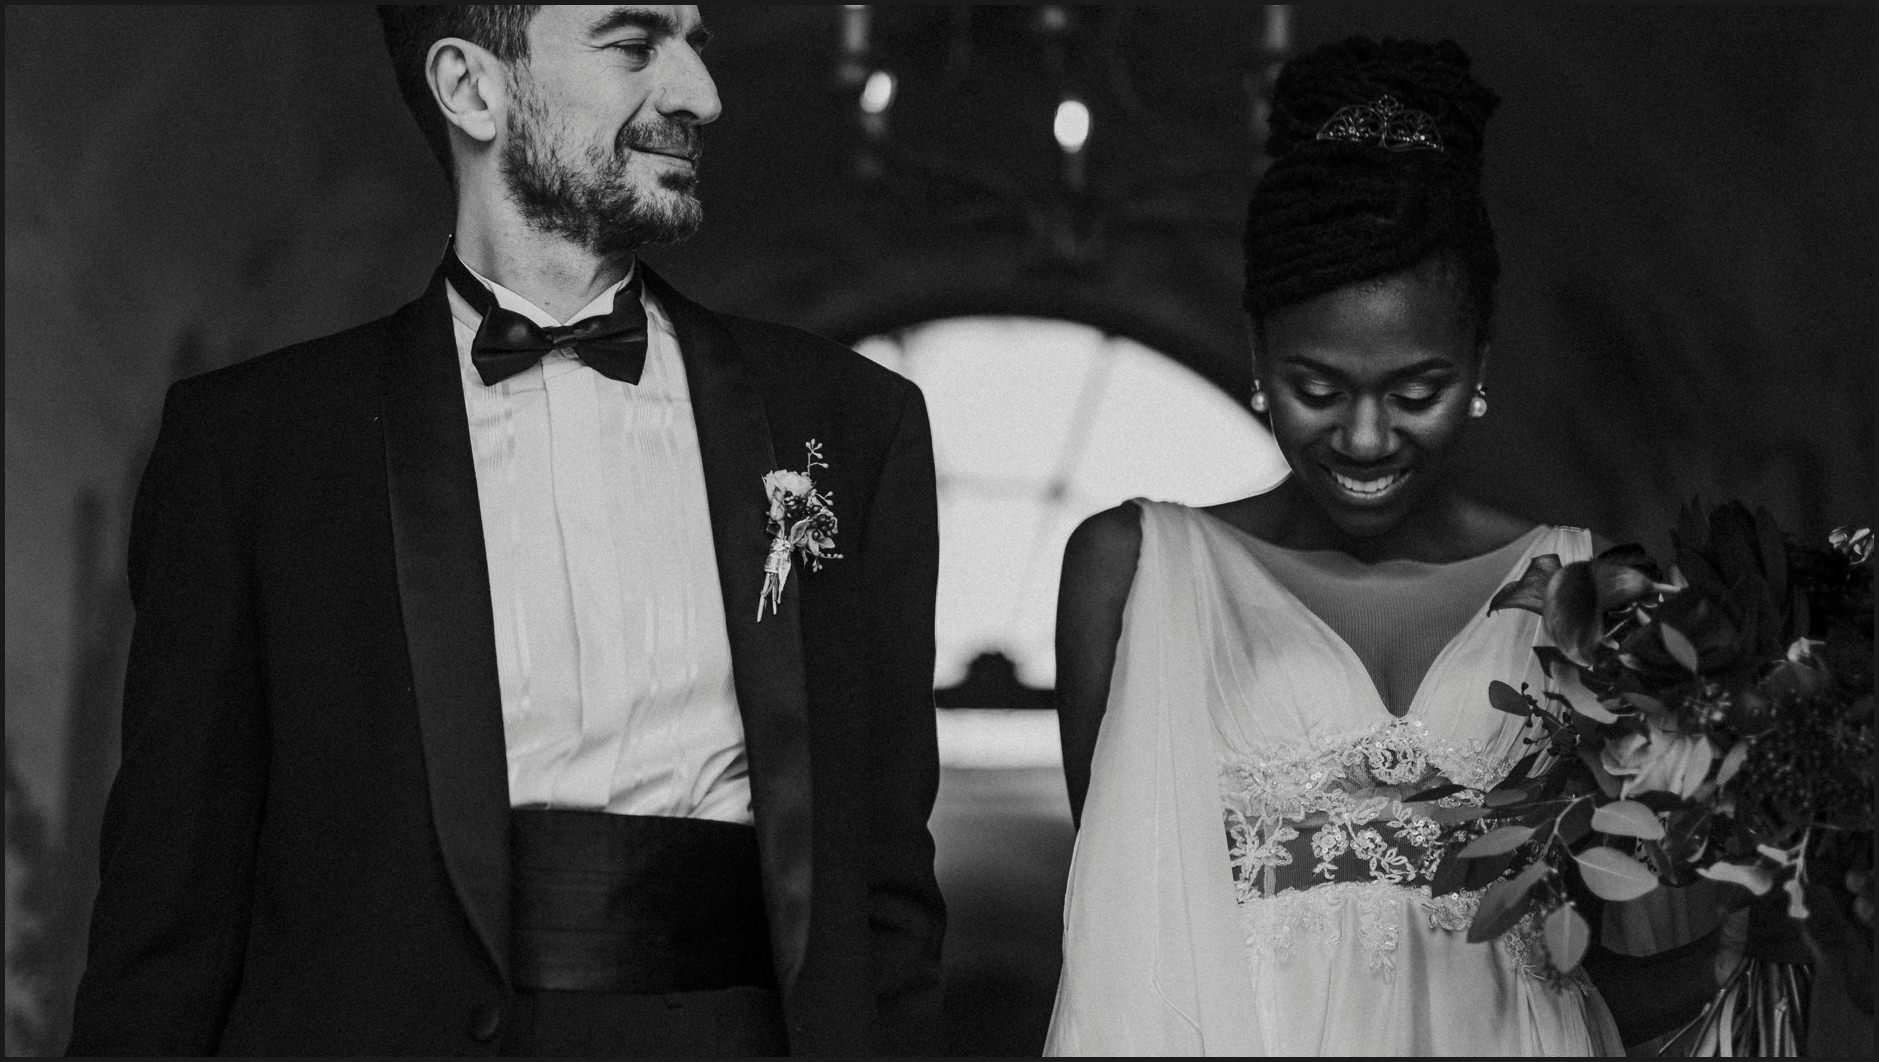 bride, groom, villa medicea di lilliano, wedding, tuscany, black and white, portrait, intimate